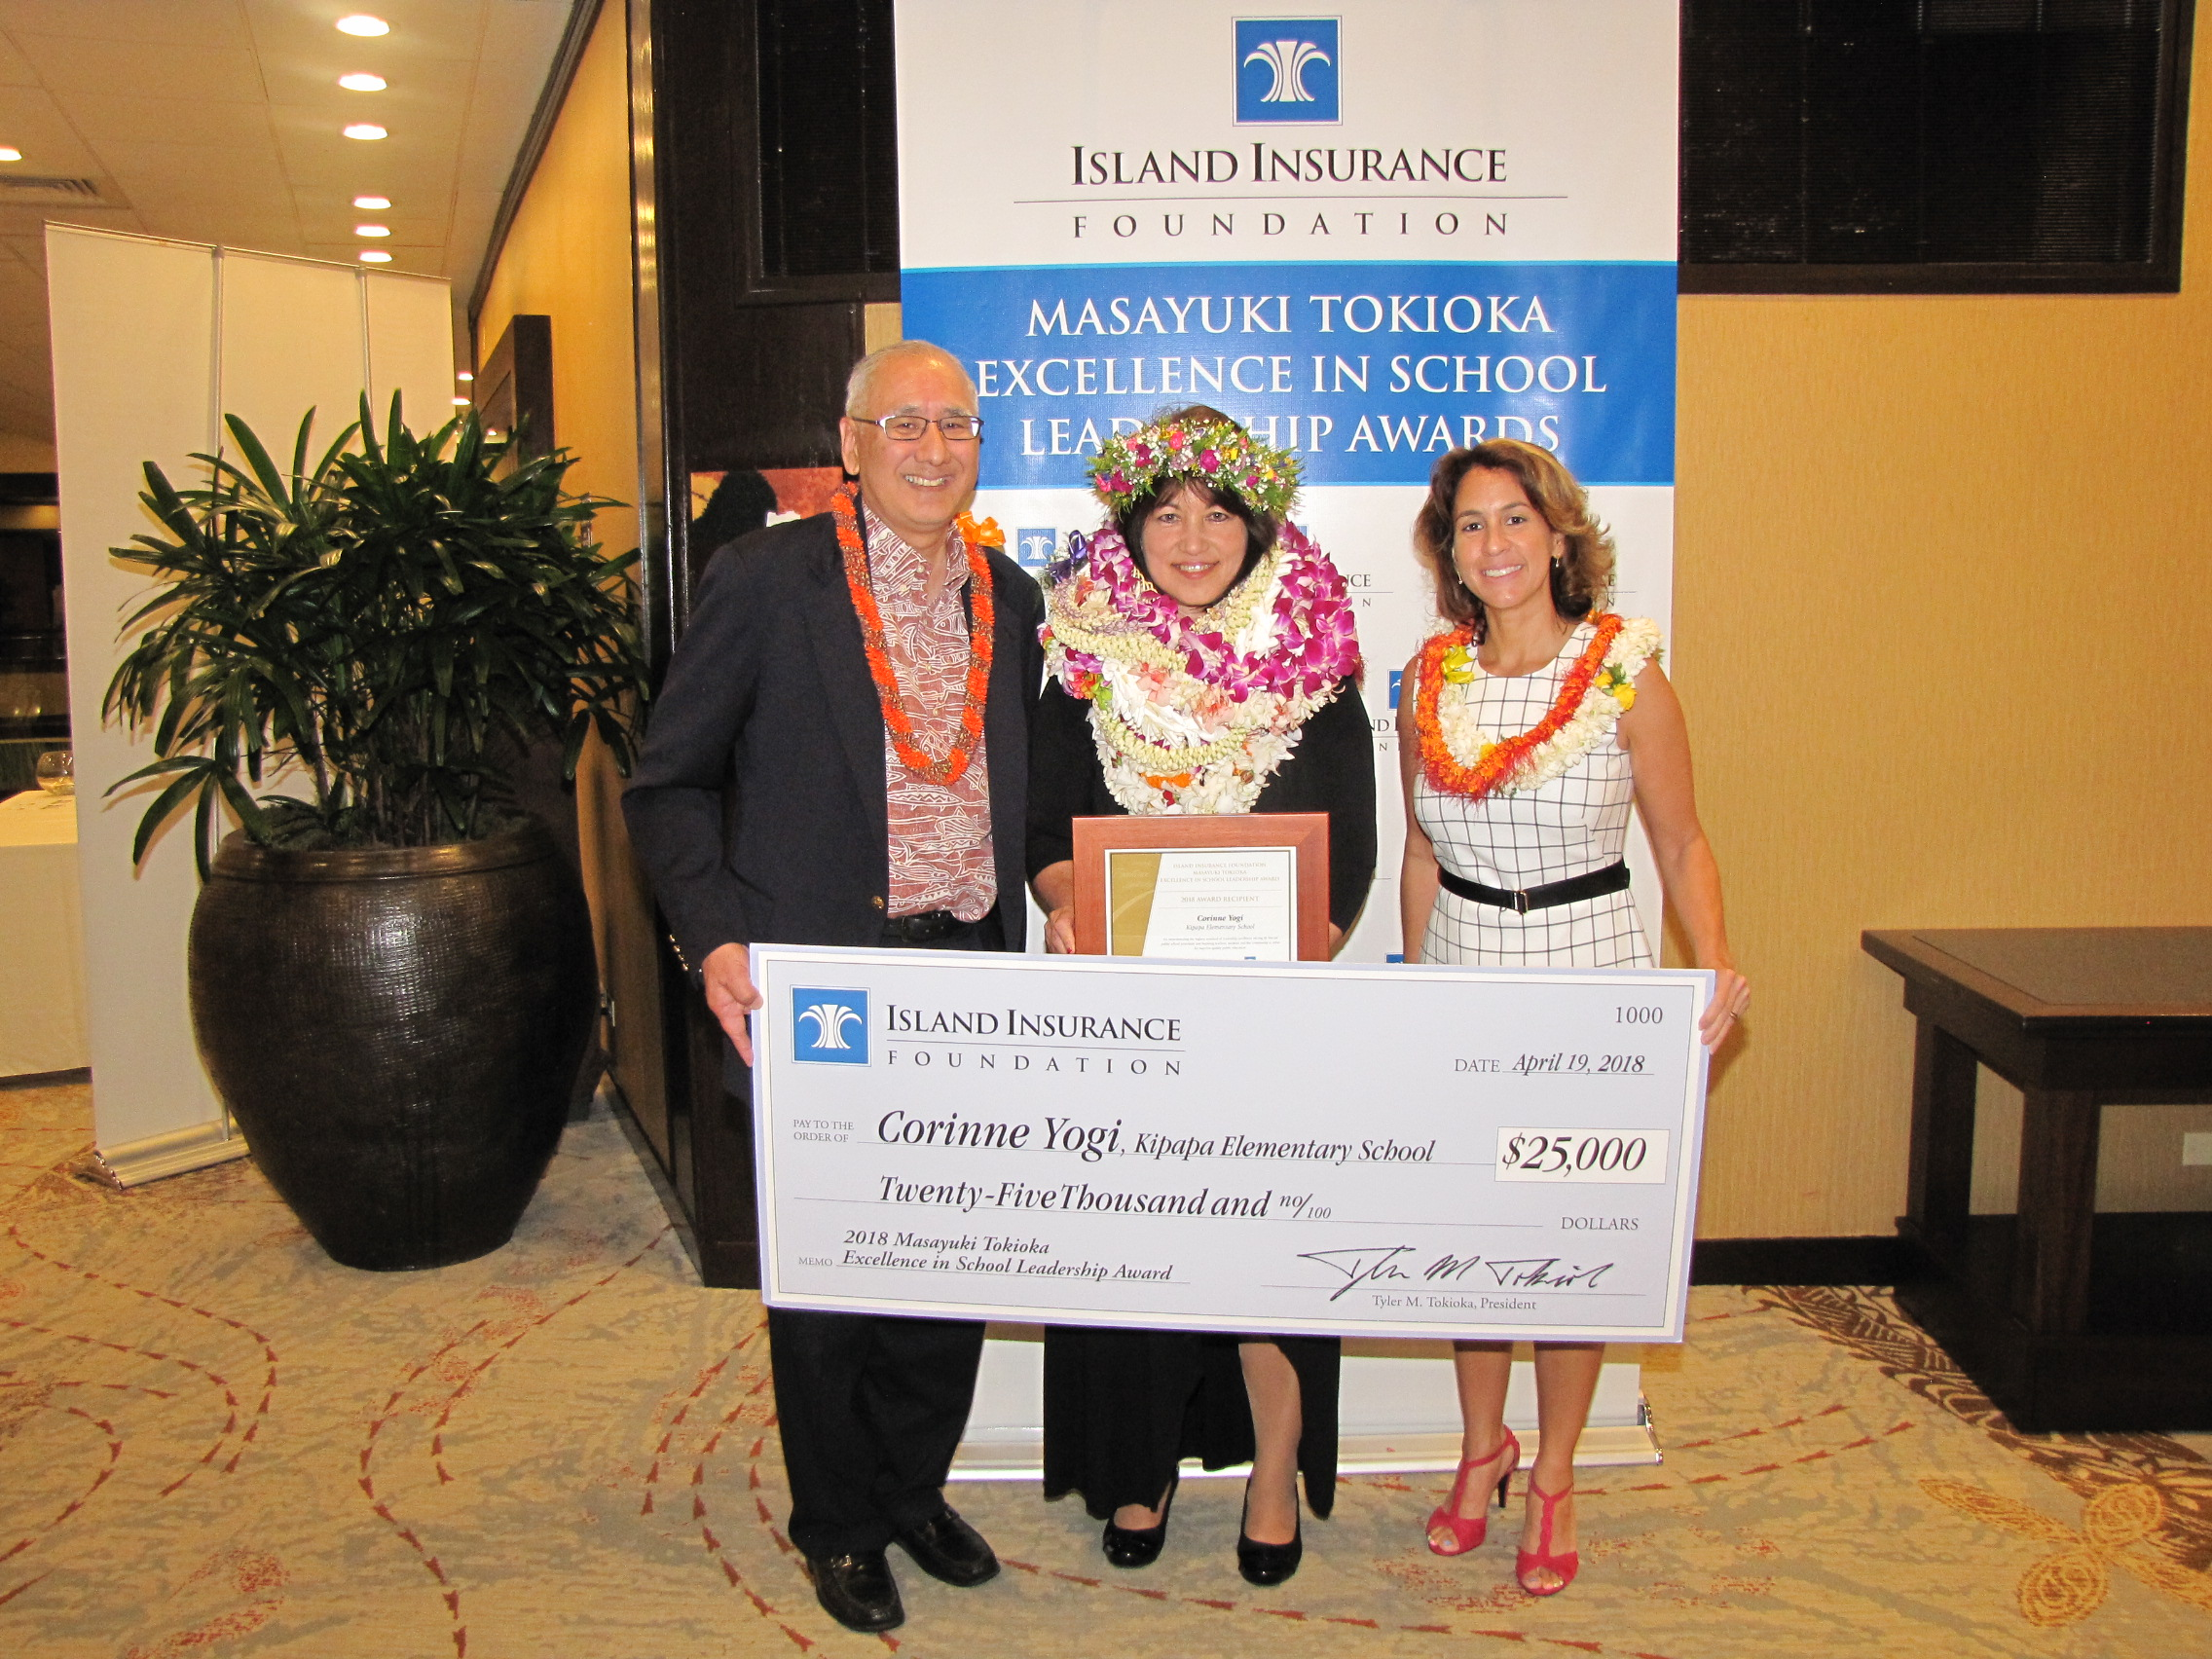 Island Insurance Foundation president Tyler Tokioka and state Department of Education Superintendent Christina Kishimoto (far right) congratulate 2018 Masayuki Tokioka Excellence in School Leadership Award recipient Corinne Yogi. (Photo courtesy DOE)